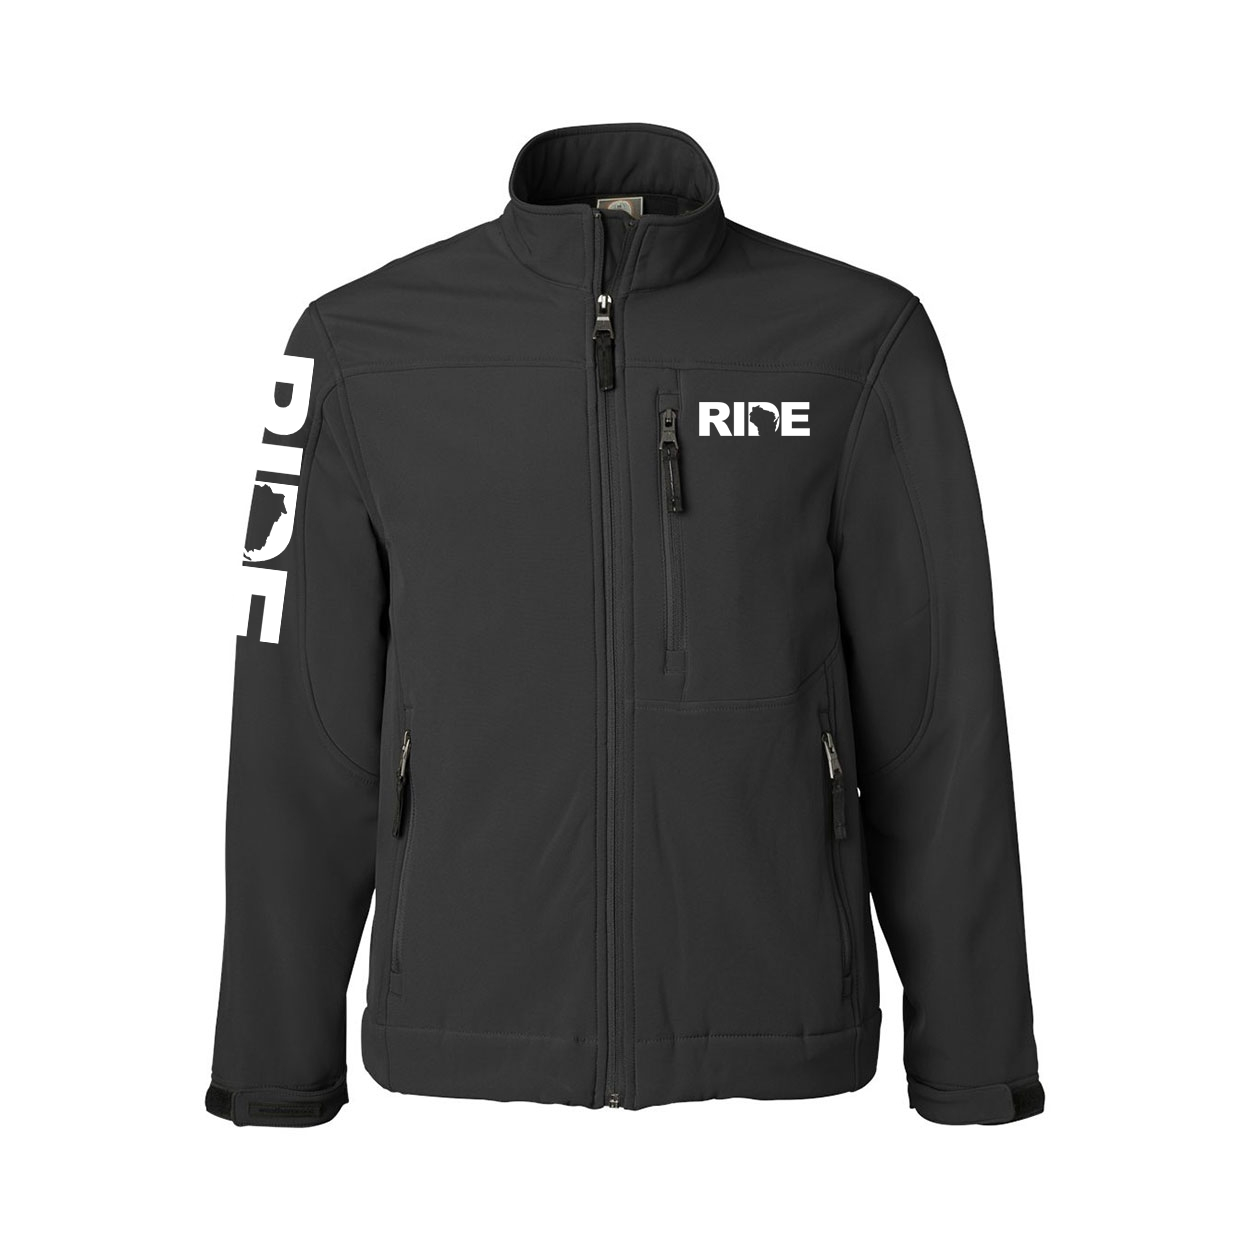 Ride Wisconsin Classic Soft Shell Weatherproof Jacket